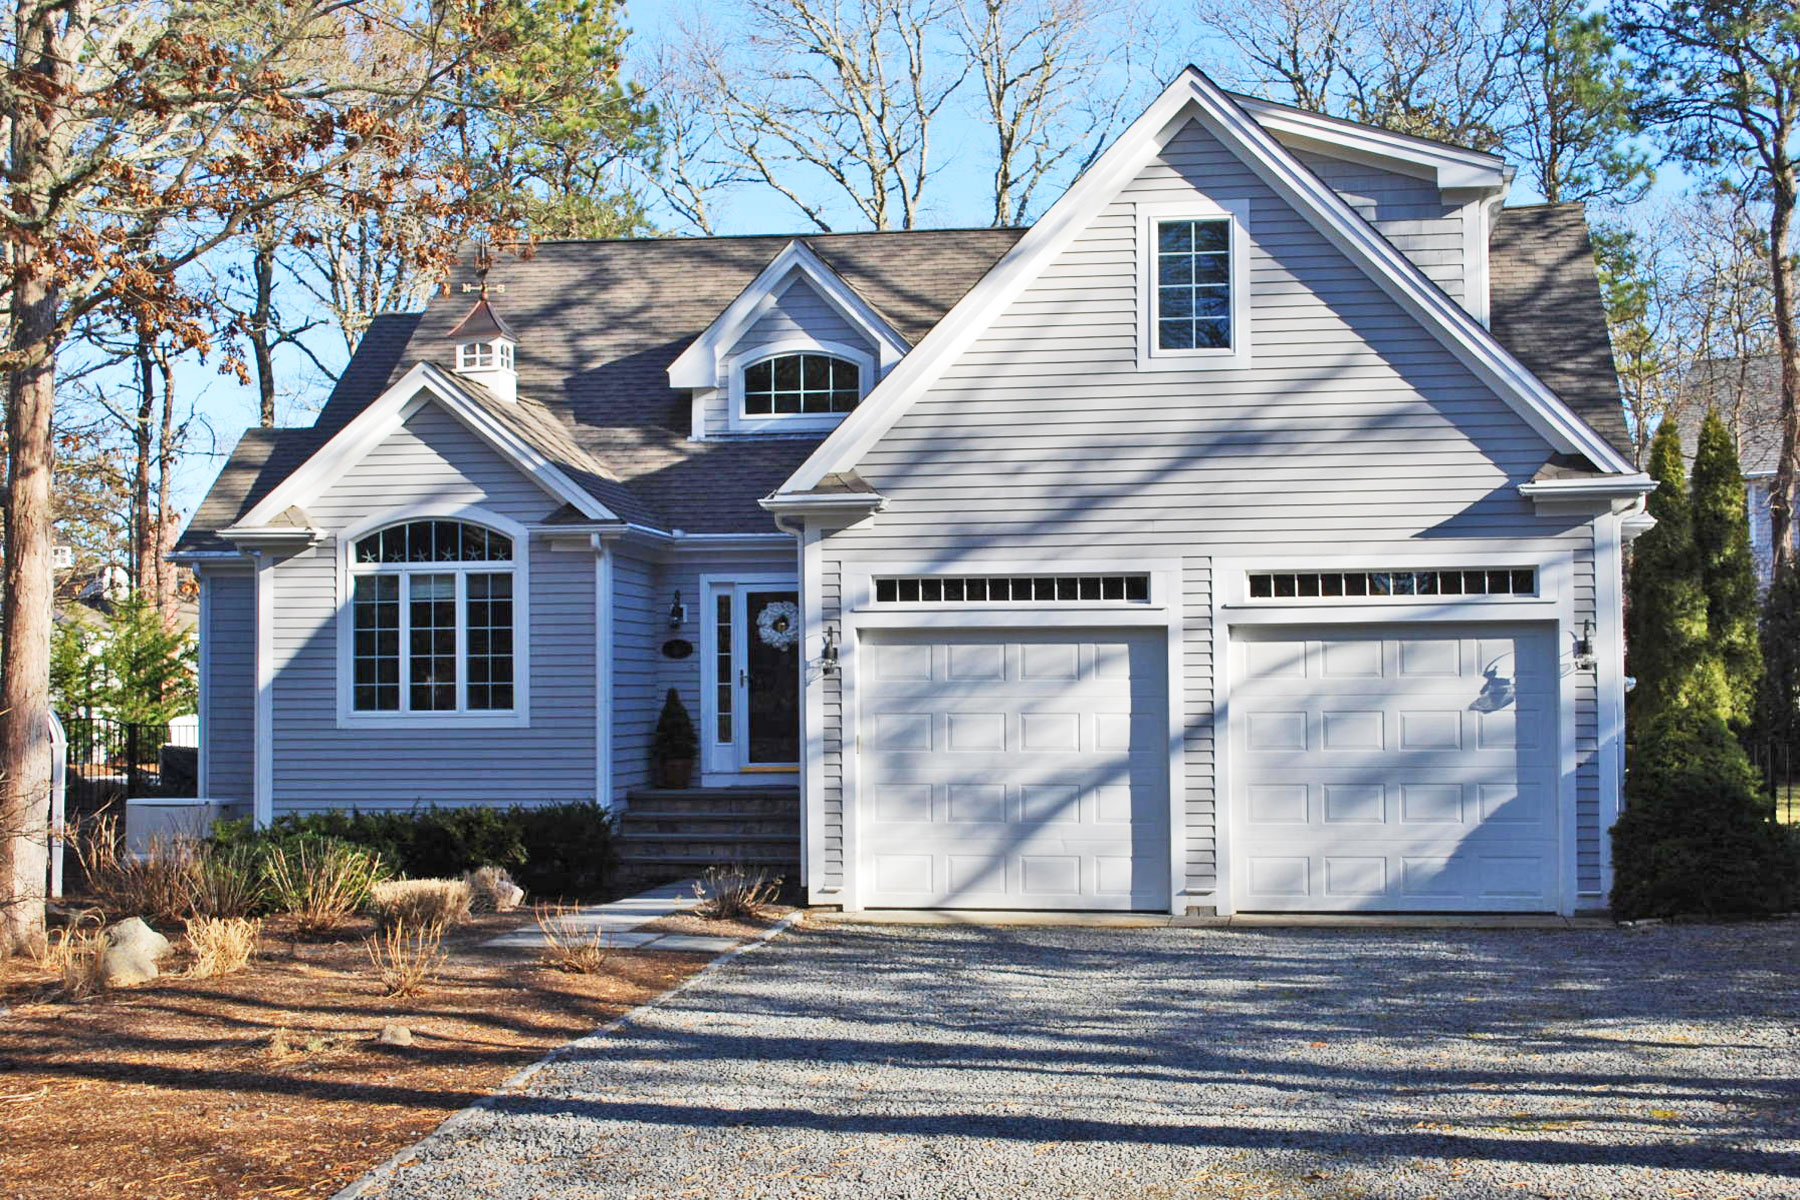 Single Family Homes for Sale at SUMMERSEA WATERVIEW CONTEMPORARY 11 Sand Dollar Lane New Seabury, Massachusetts 02649 United States